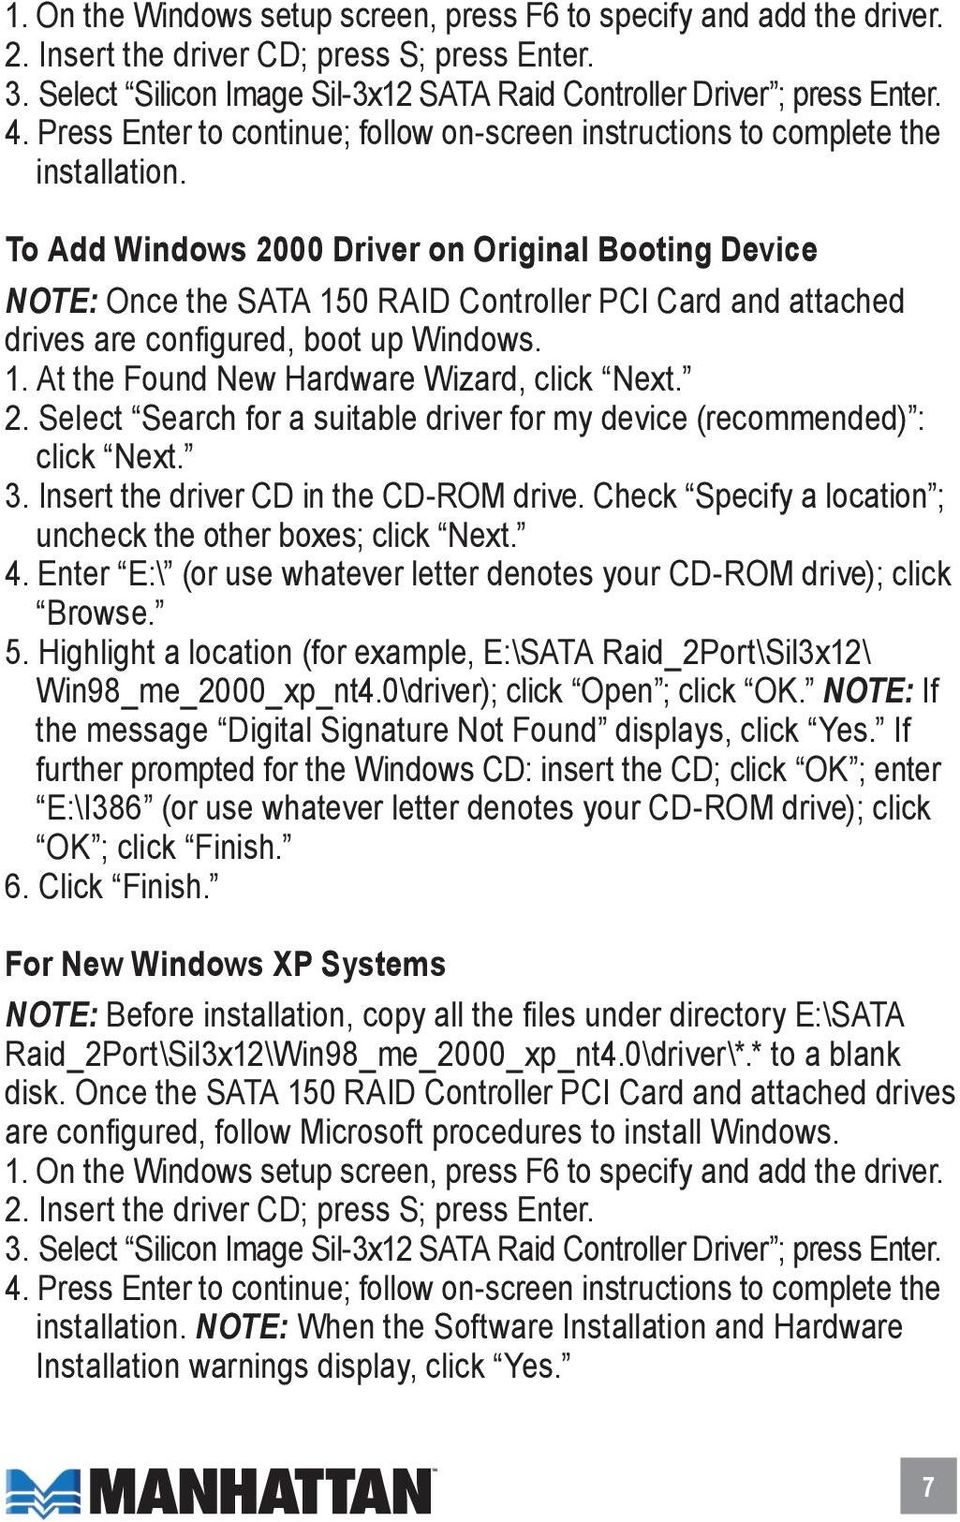 To Add Windows 2000 Driver on Original Booting Device NOTE: Once the SATA 150 RAID Controller PCI Card and attached drives are configured, boot up Windows. 1. At the Found New Hardware Wizard, click Next.